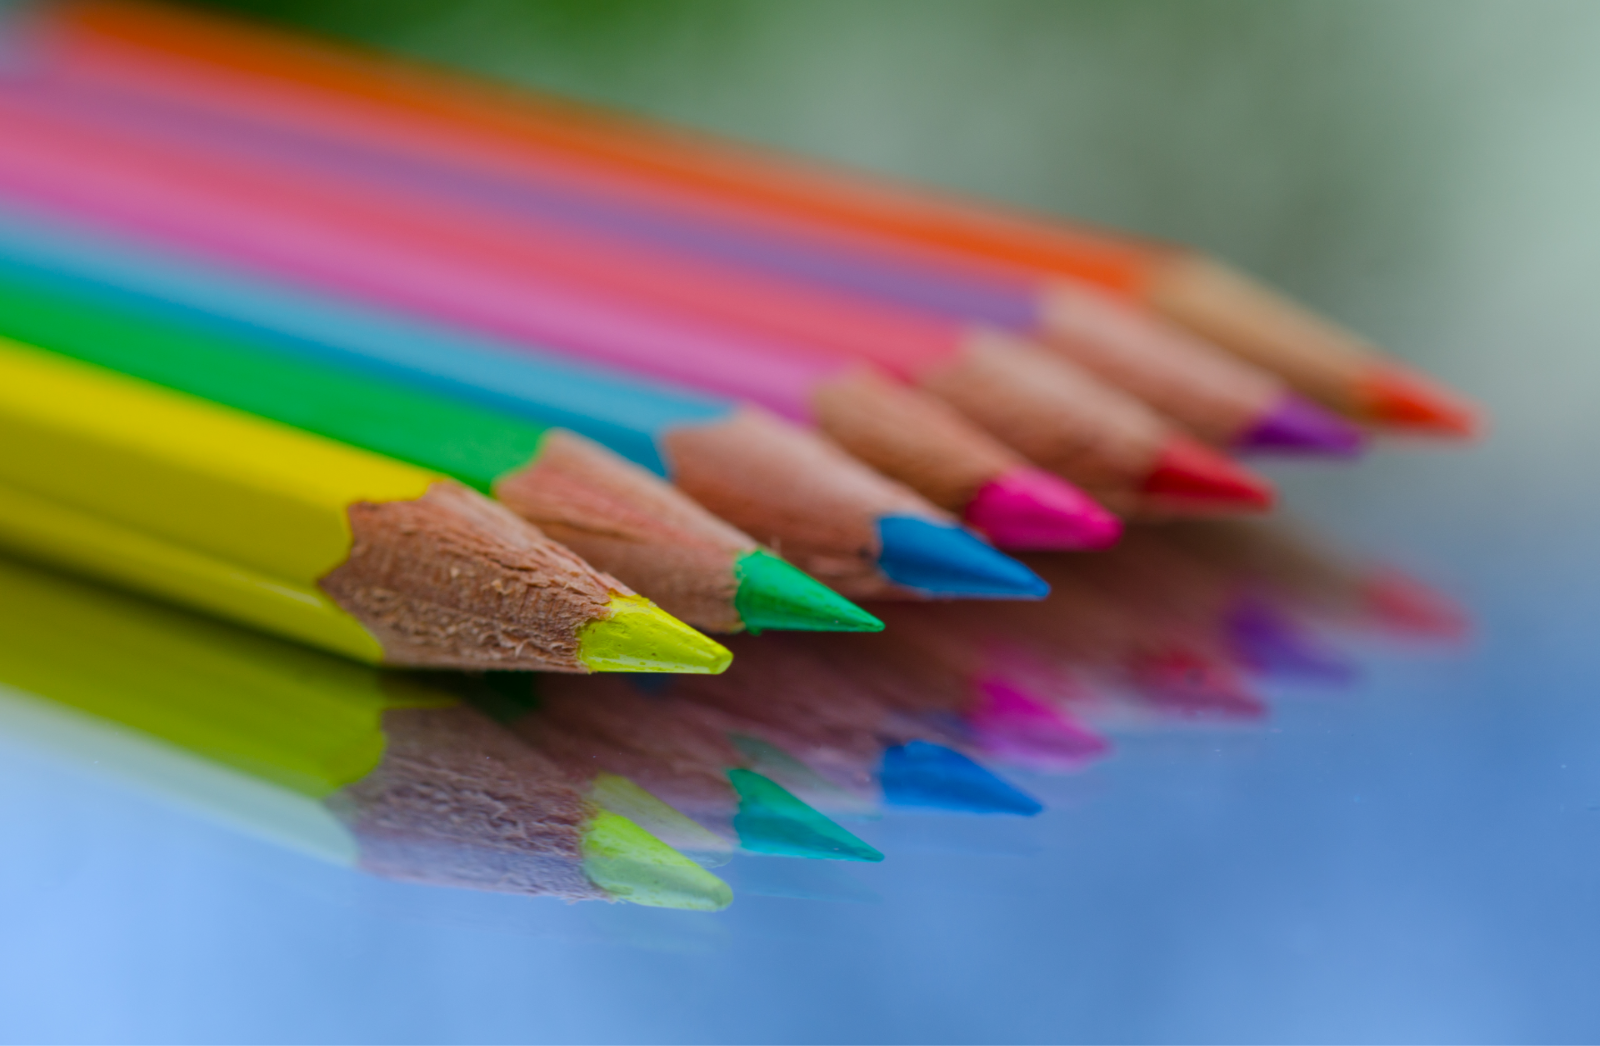 Seven colored pencils  lined up on a reflective surface